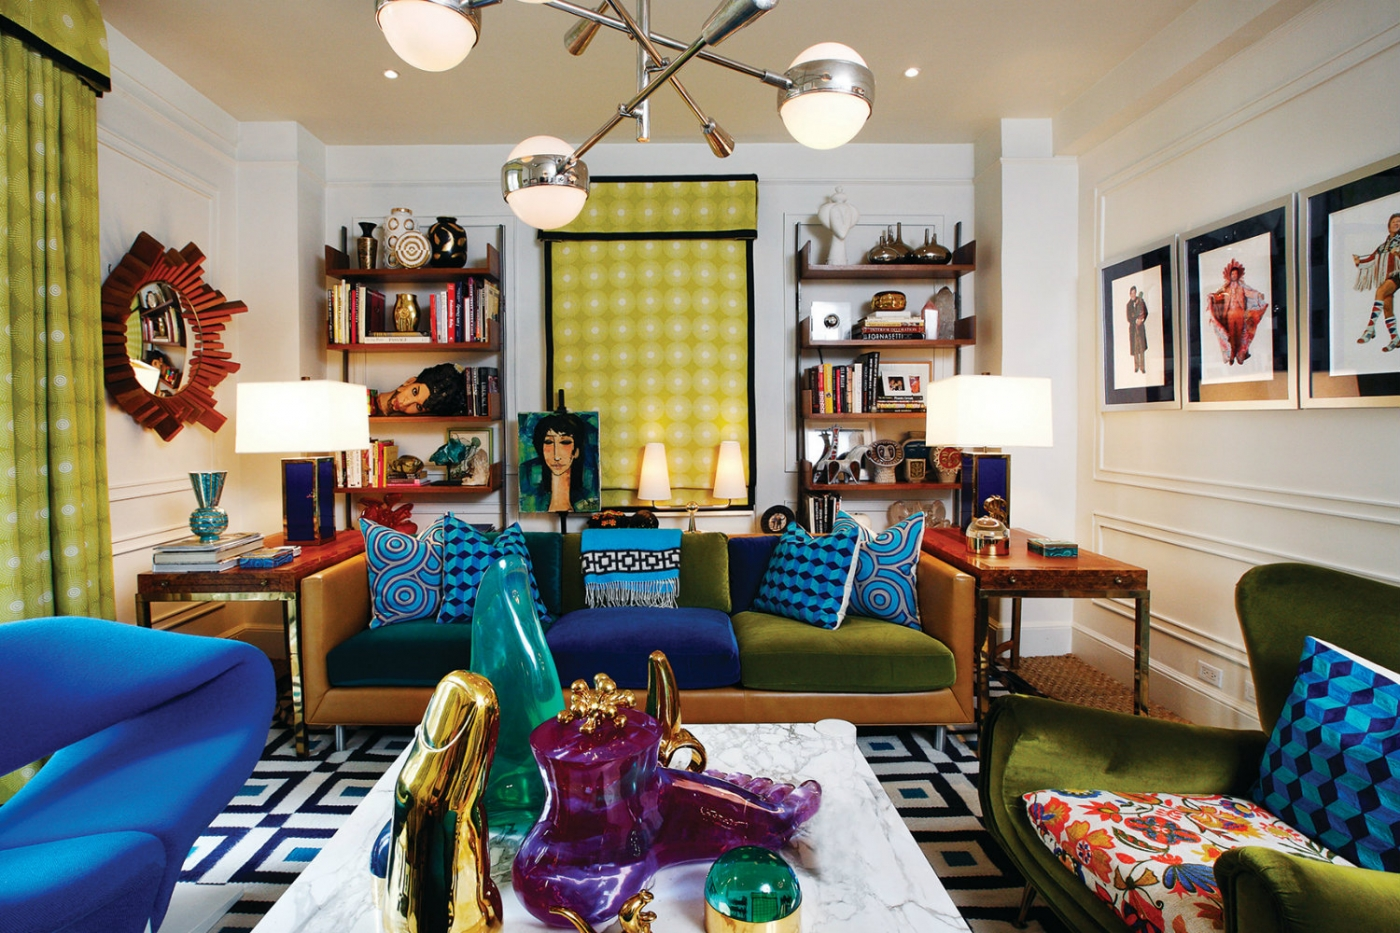 jonathan adler Jonathan Adler's Greenwich Village Apartment: The Tour featured3 1400x933